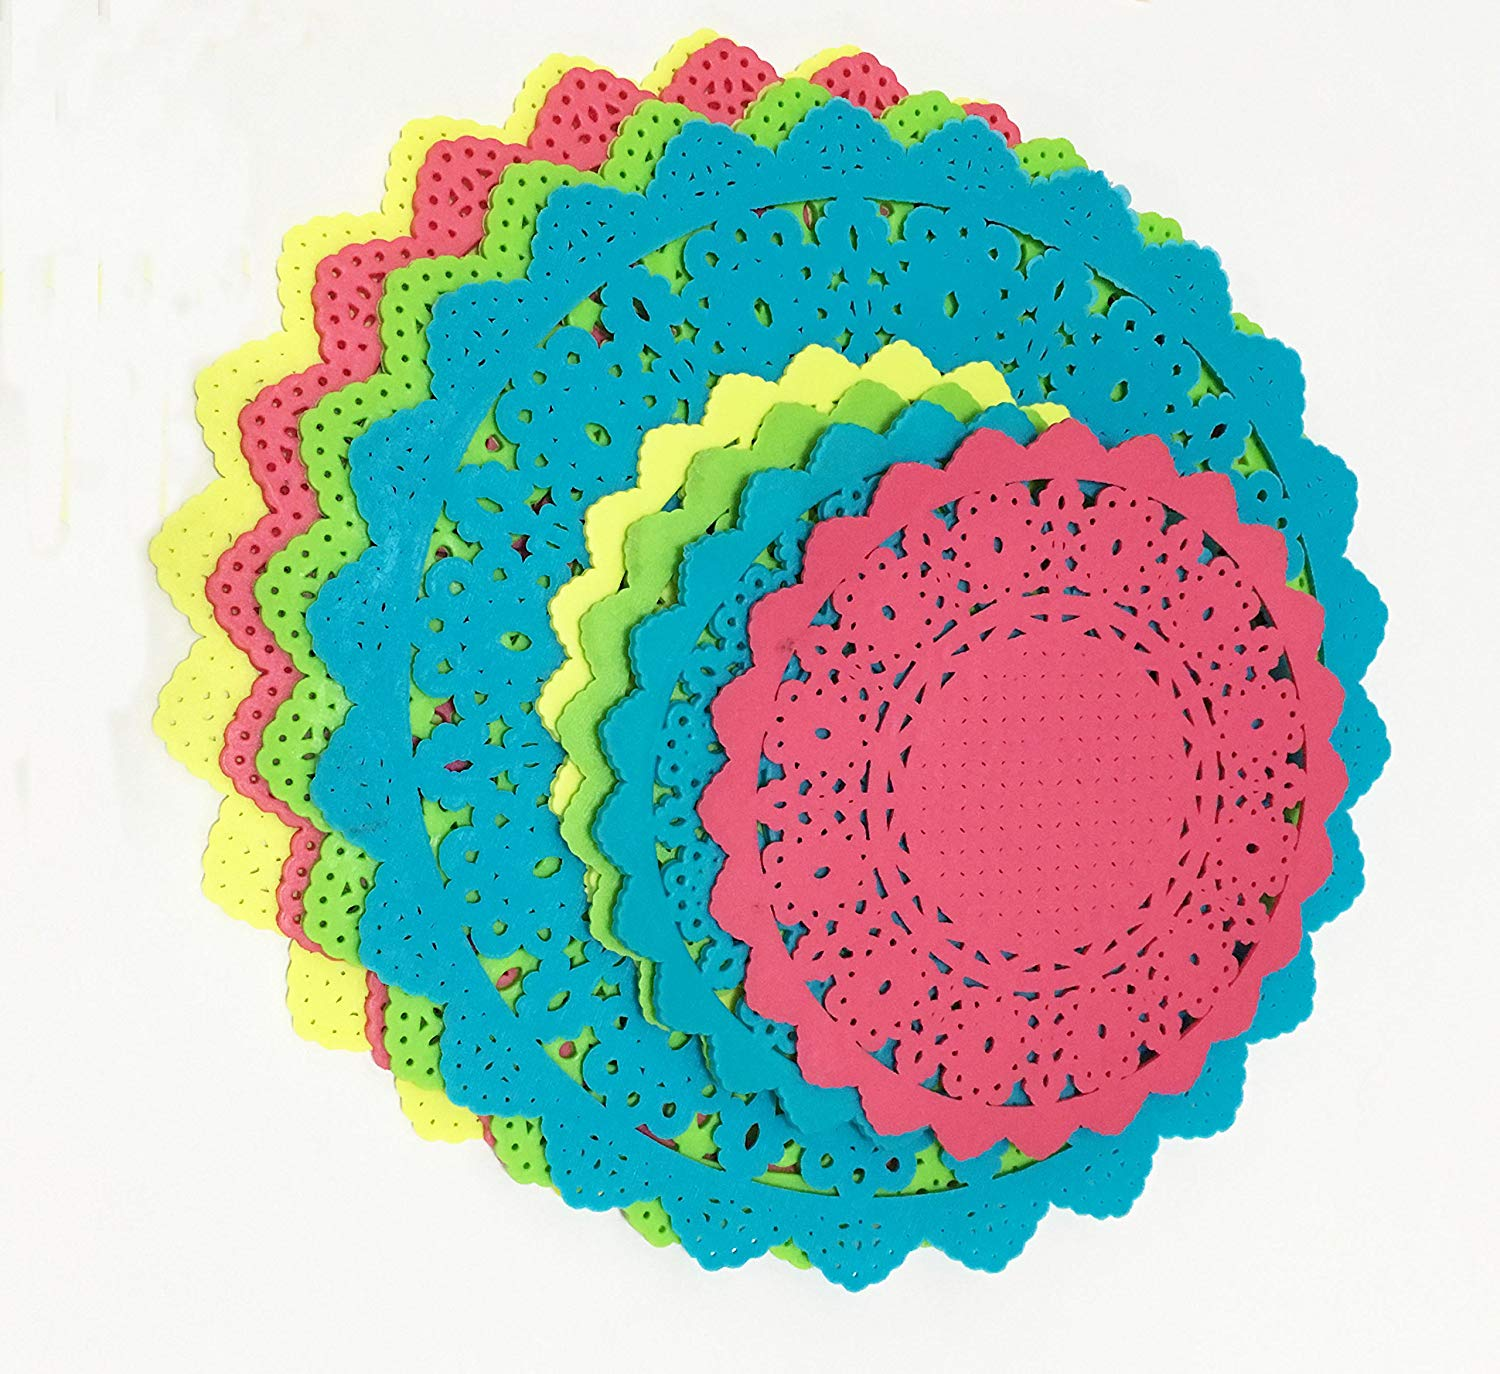 Colorful Hollow Thick PVC Placemats Pot Holder Creative Retro Lace Coasters Bowls Mat Placemat Coaster Pot holder Diameter10CM,16CM (Green,Blue,Yellow,Rose Red,8 PCS)